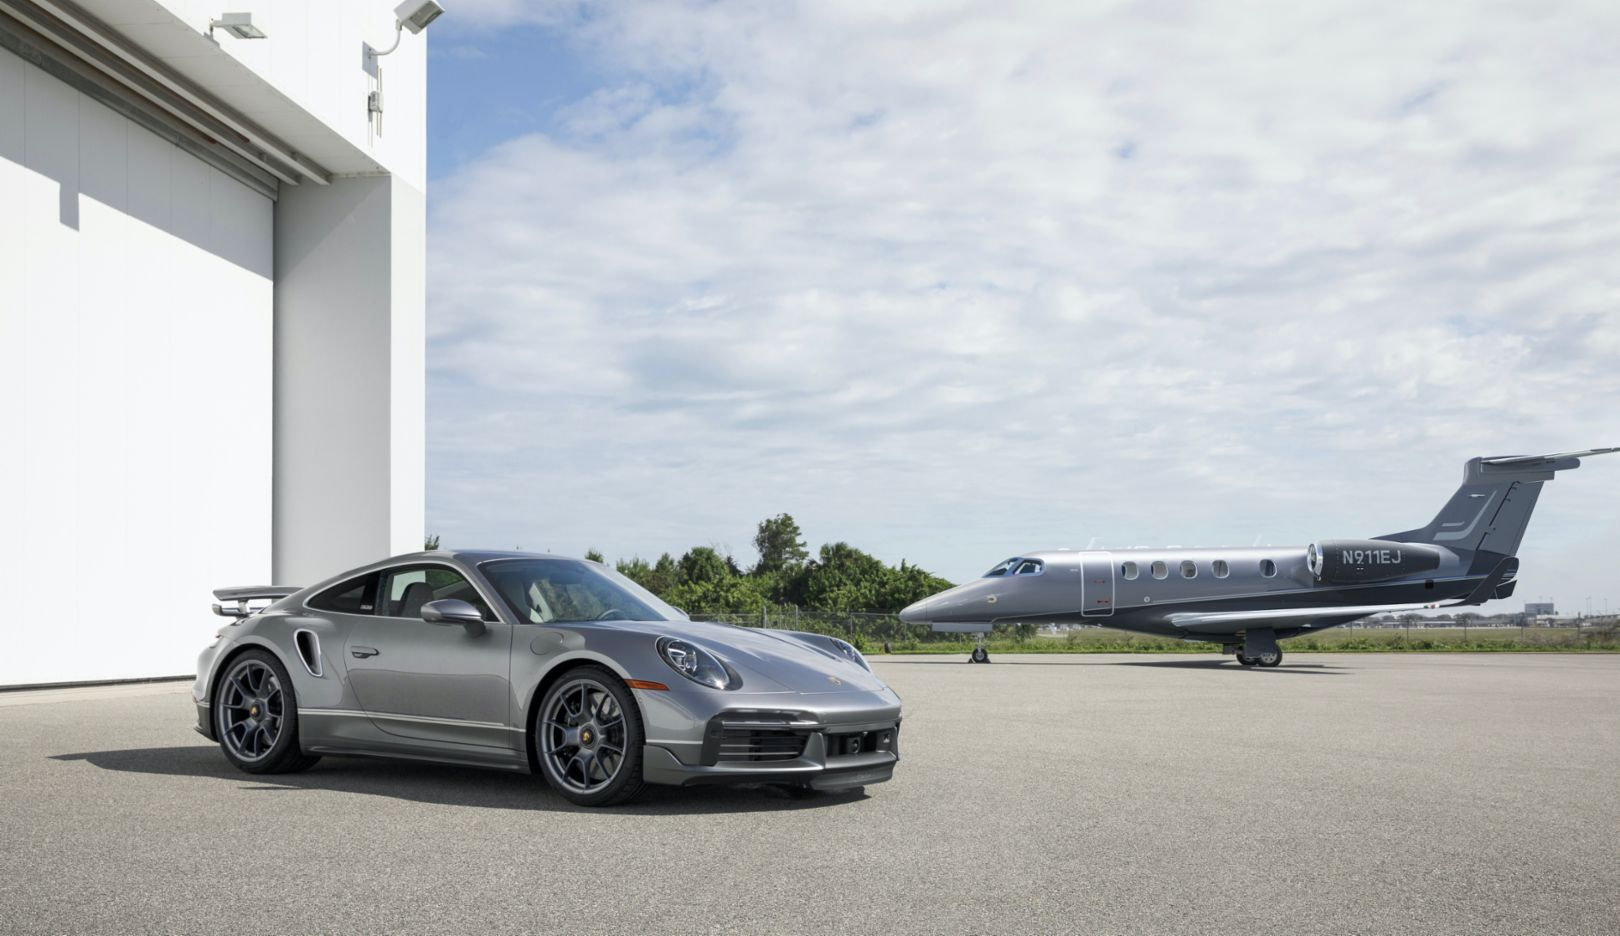 Porsche and Embraer Jet Angle 2